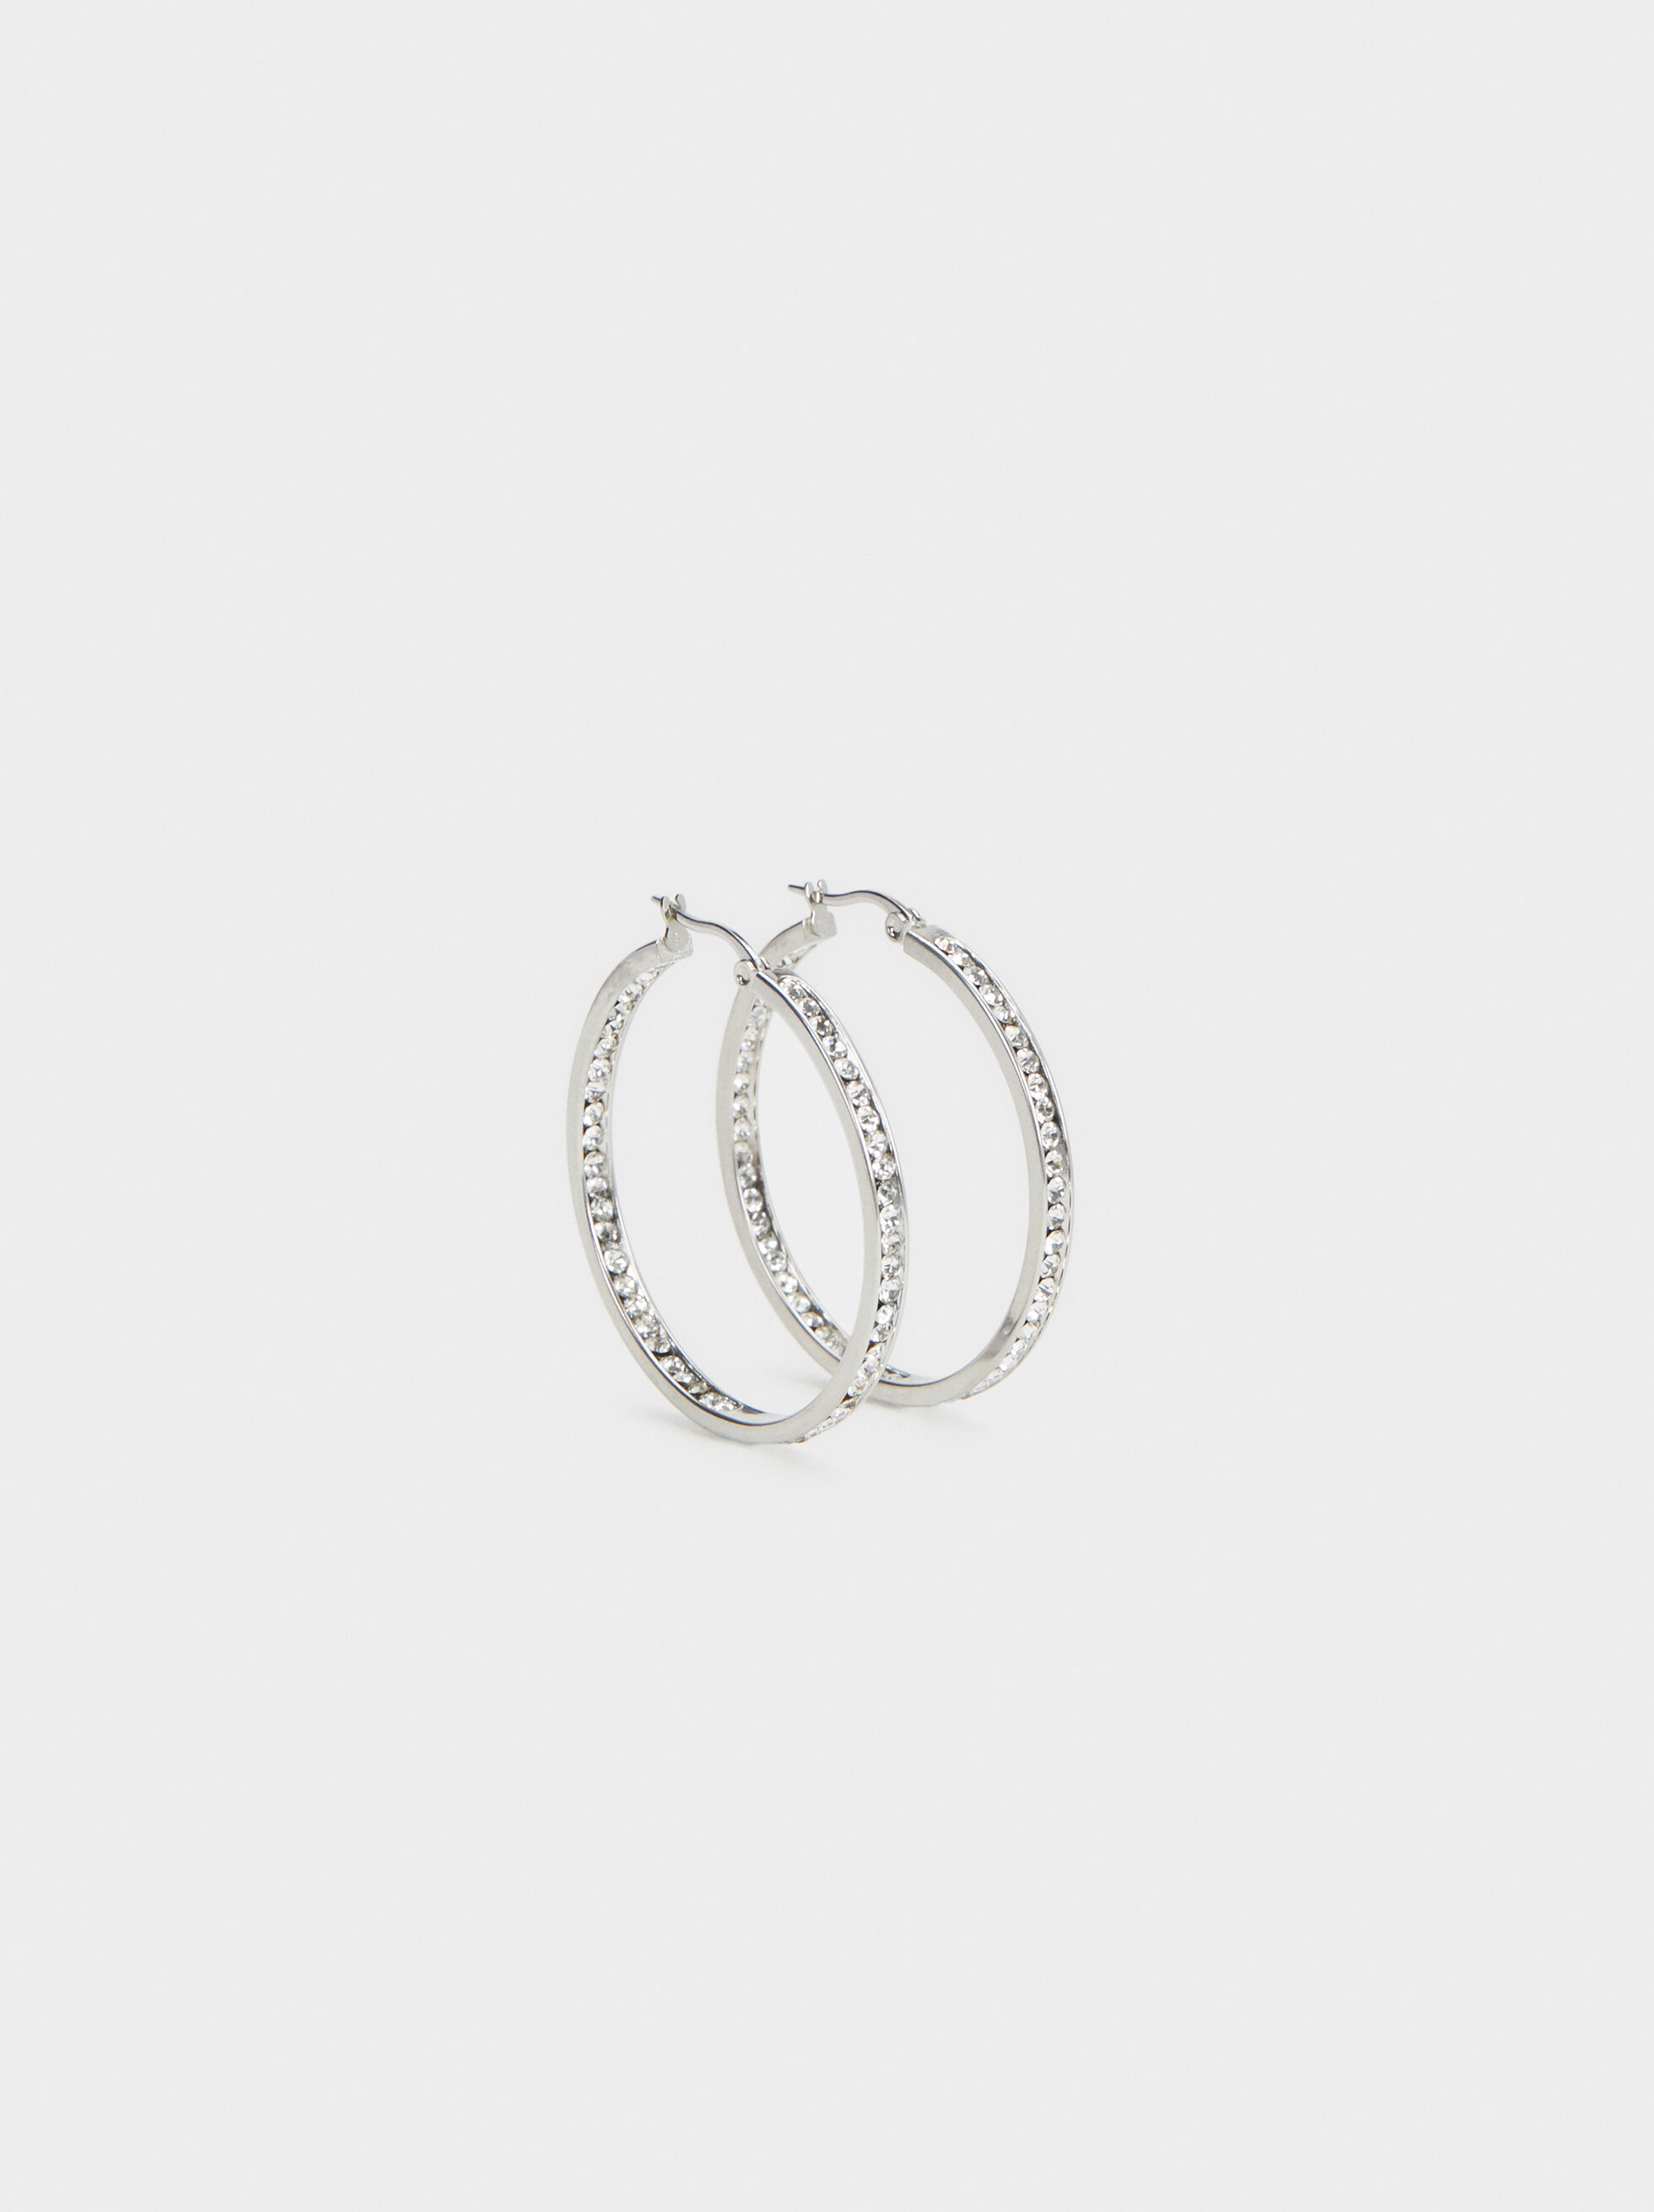 Small Steel Hoop Earrings With Rhinestones, Silver, hi-res